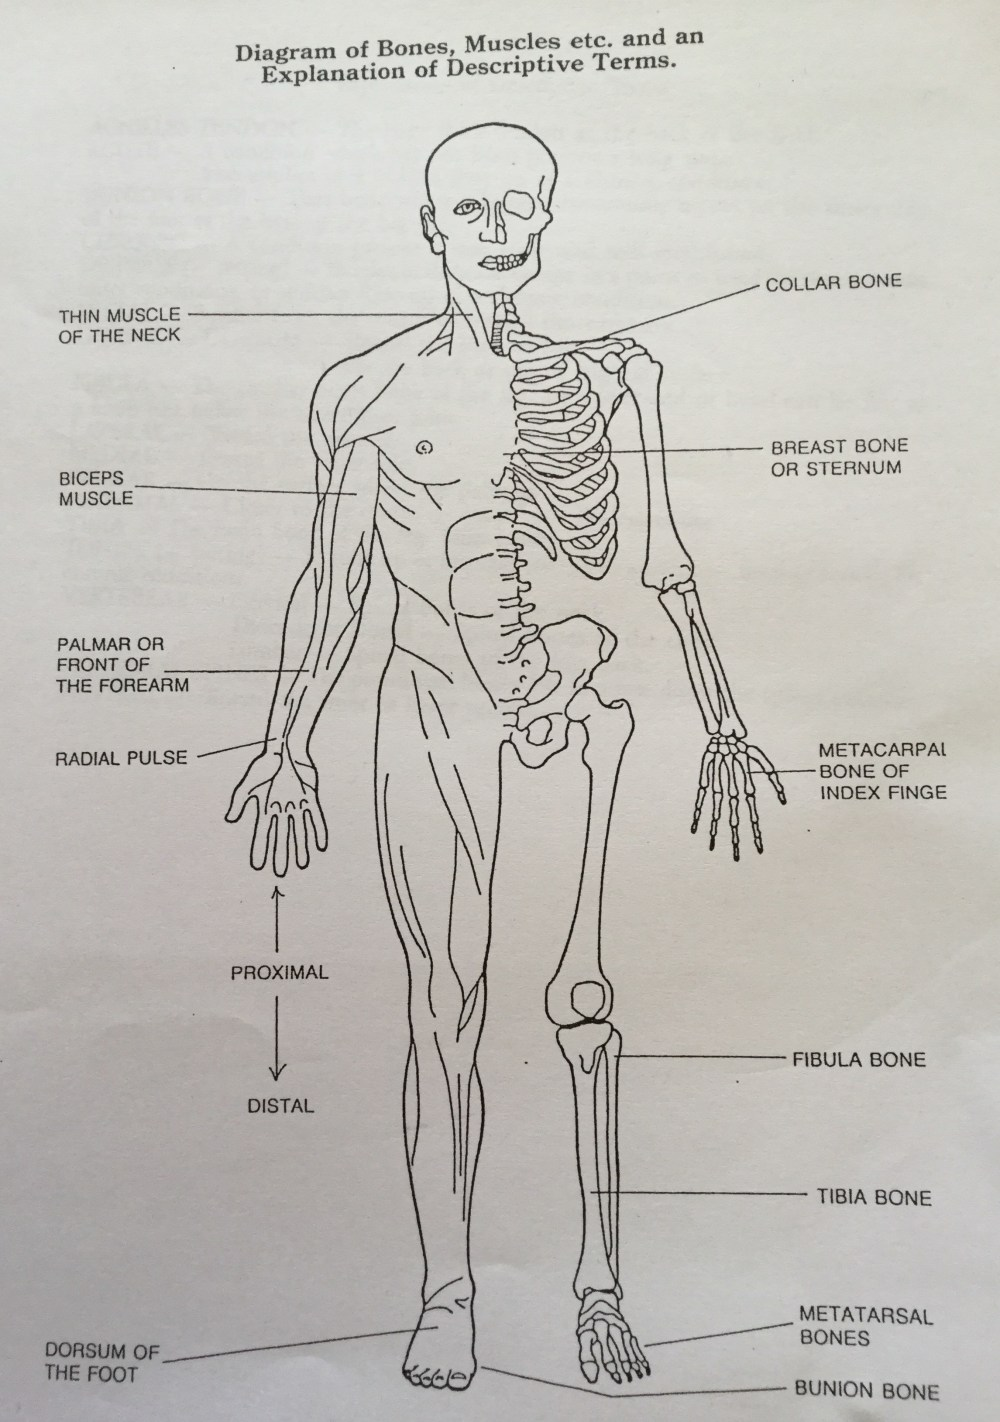 medium resolution of diagrams of bones and muscles names and discretions